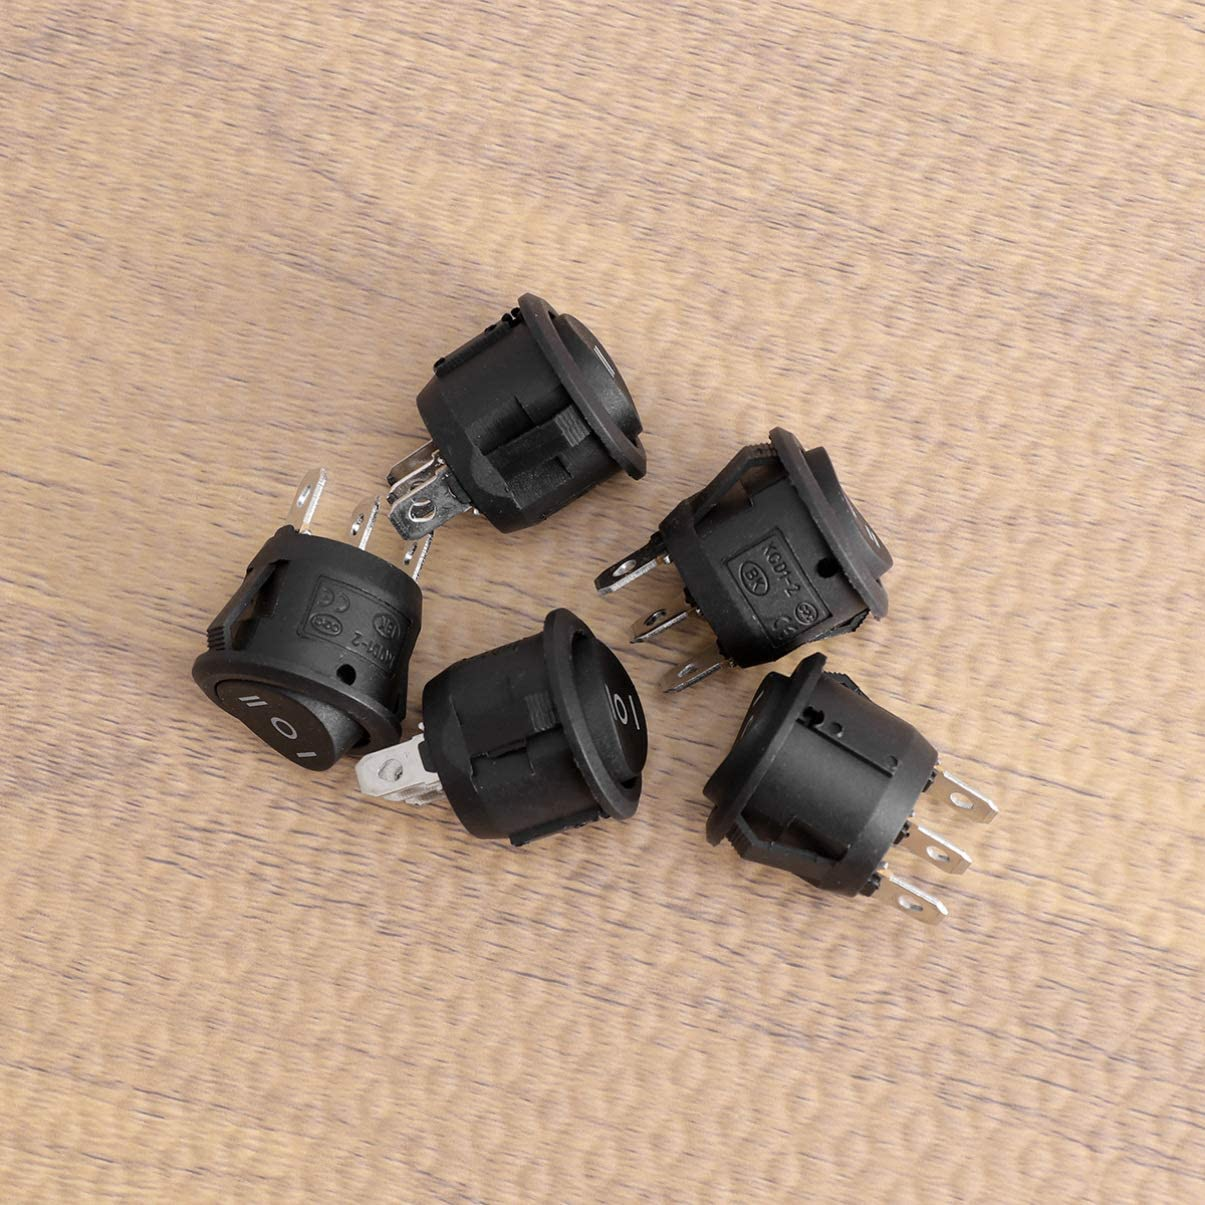 VOSAREA 5 PCS 23mm Plastic Rocker Switches Small Durable Round Push Buttons for Autos Cars Vehicle Water Dispensers Boats